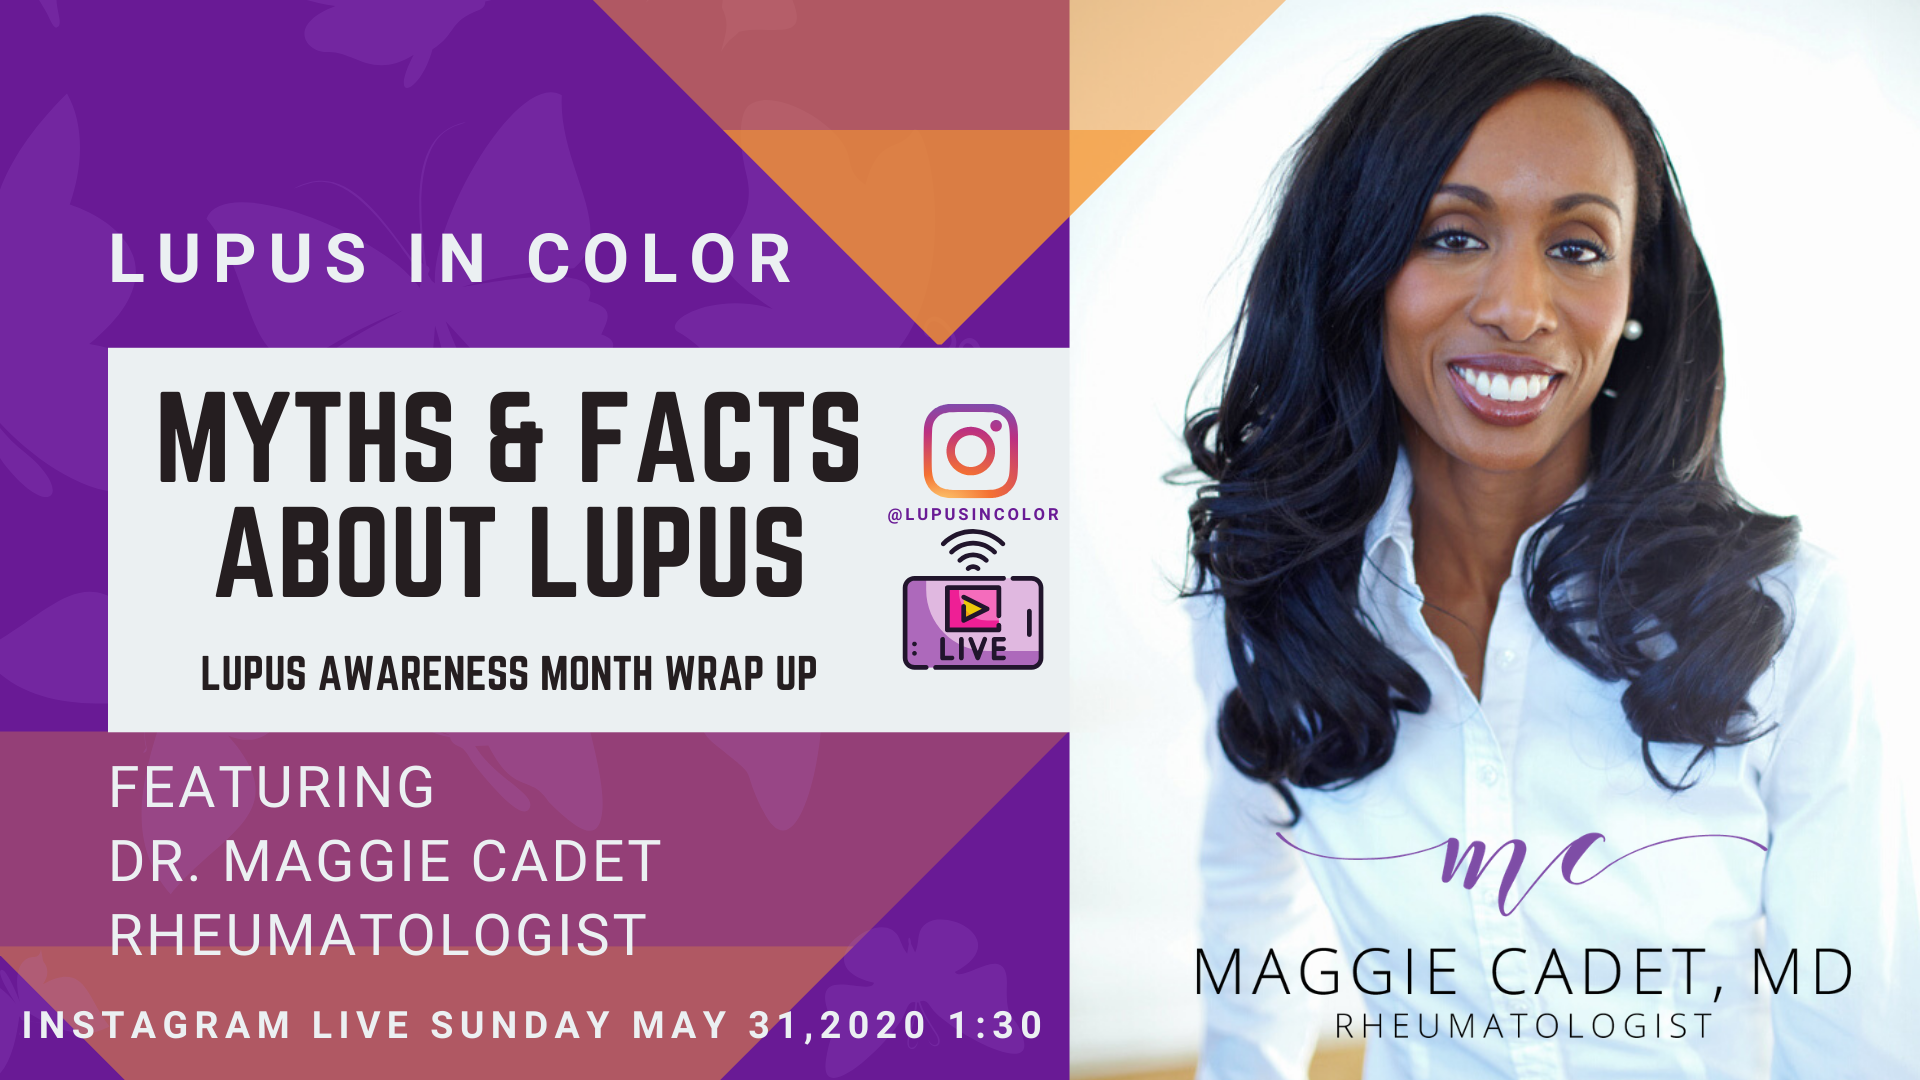 Lupus Awareness Month Wrap Up TODAY